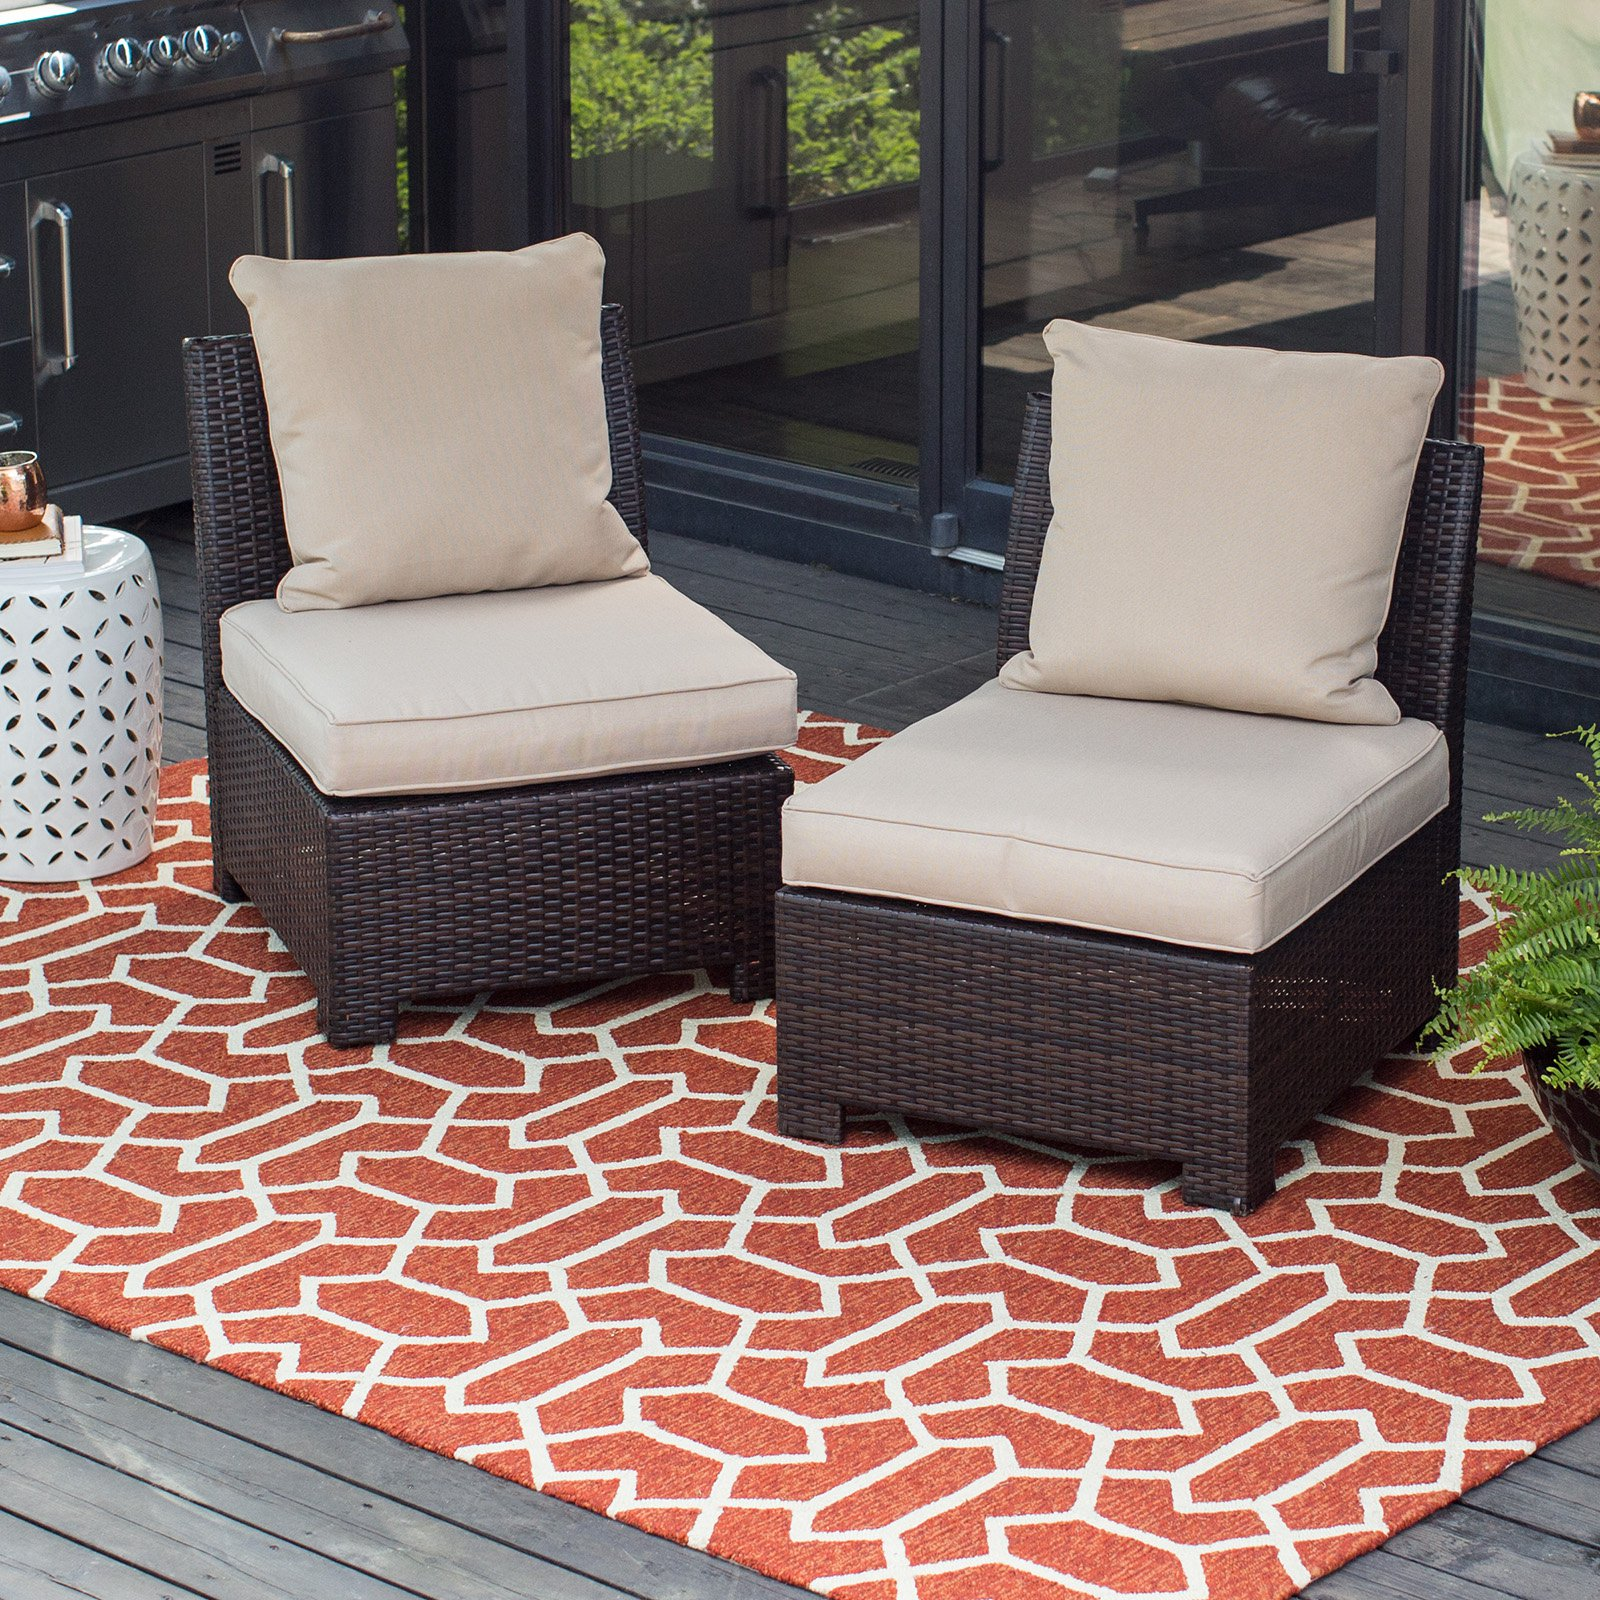 Coral Coast South Isle All-Weather Wicker Dark Brown Middle Armless Chair by 4 Seasons Global Inc